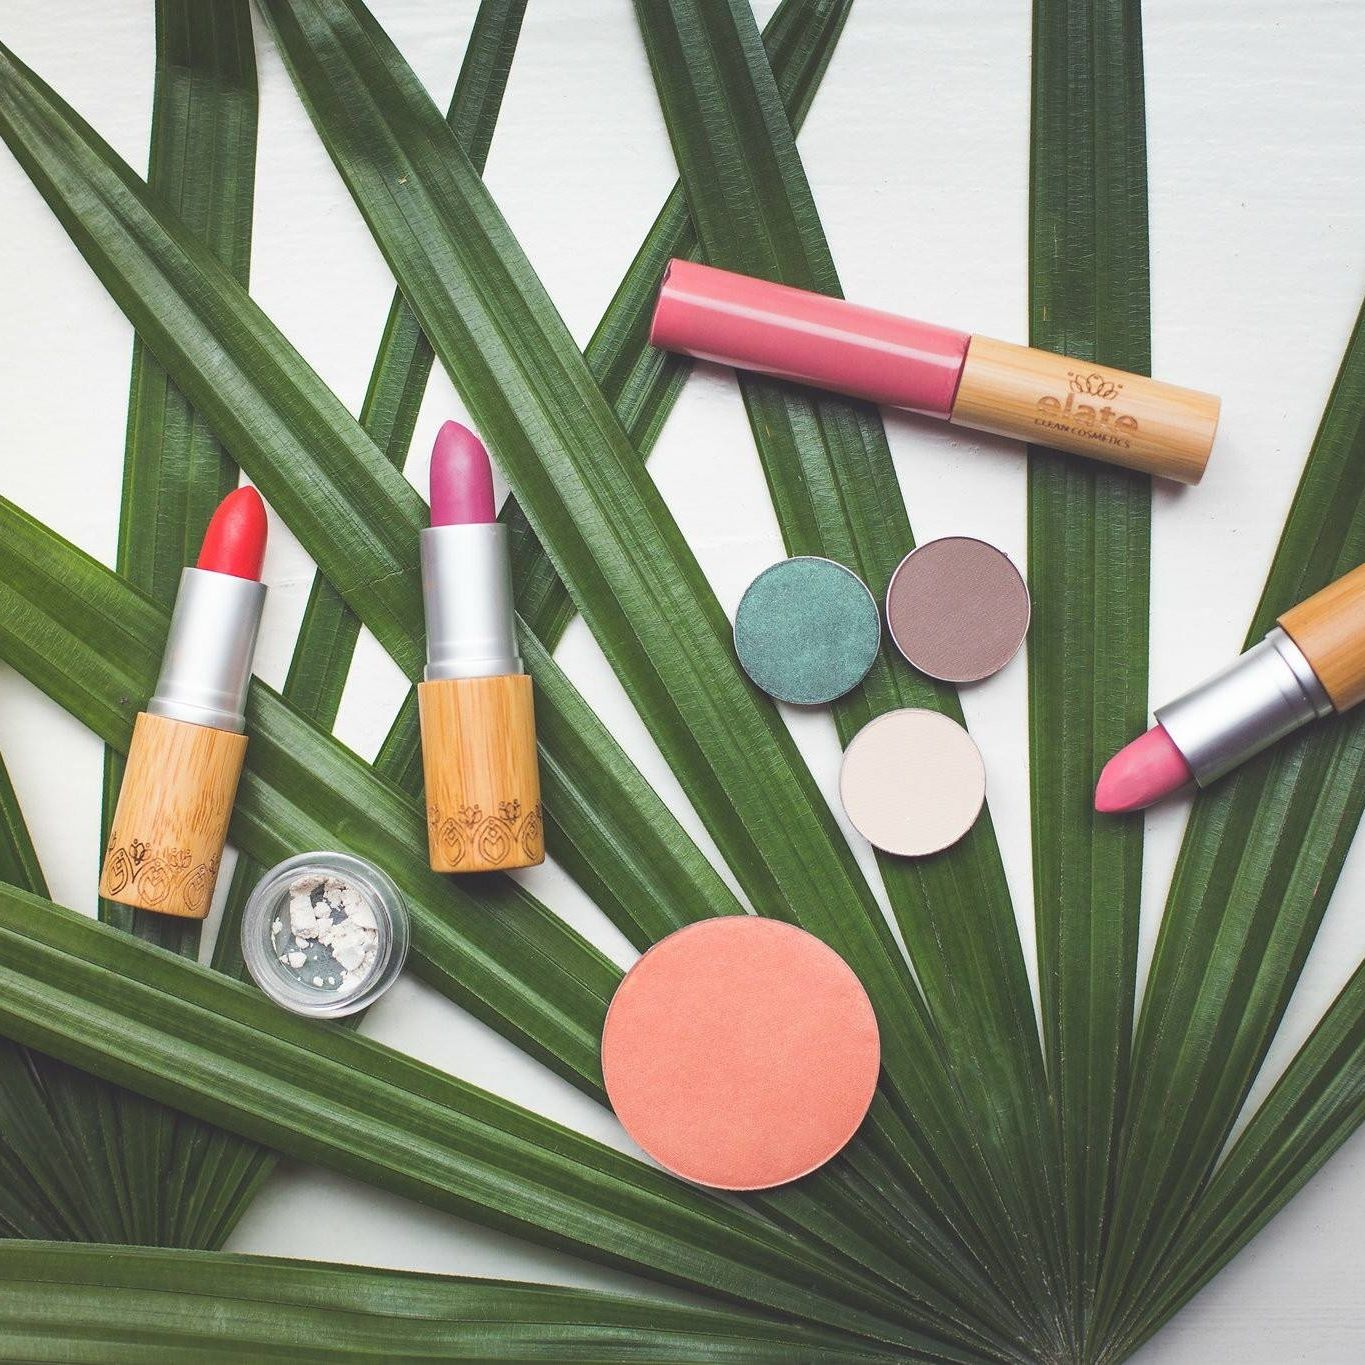 10 Natural & NonToxic Makeup Brands for Soft, Clear